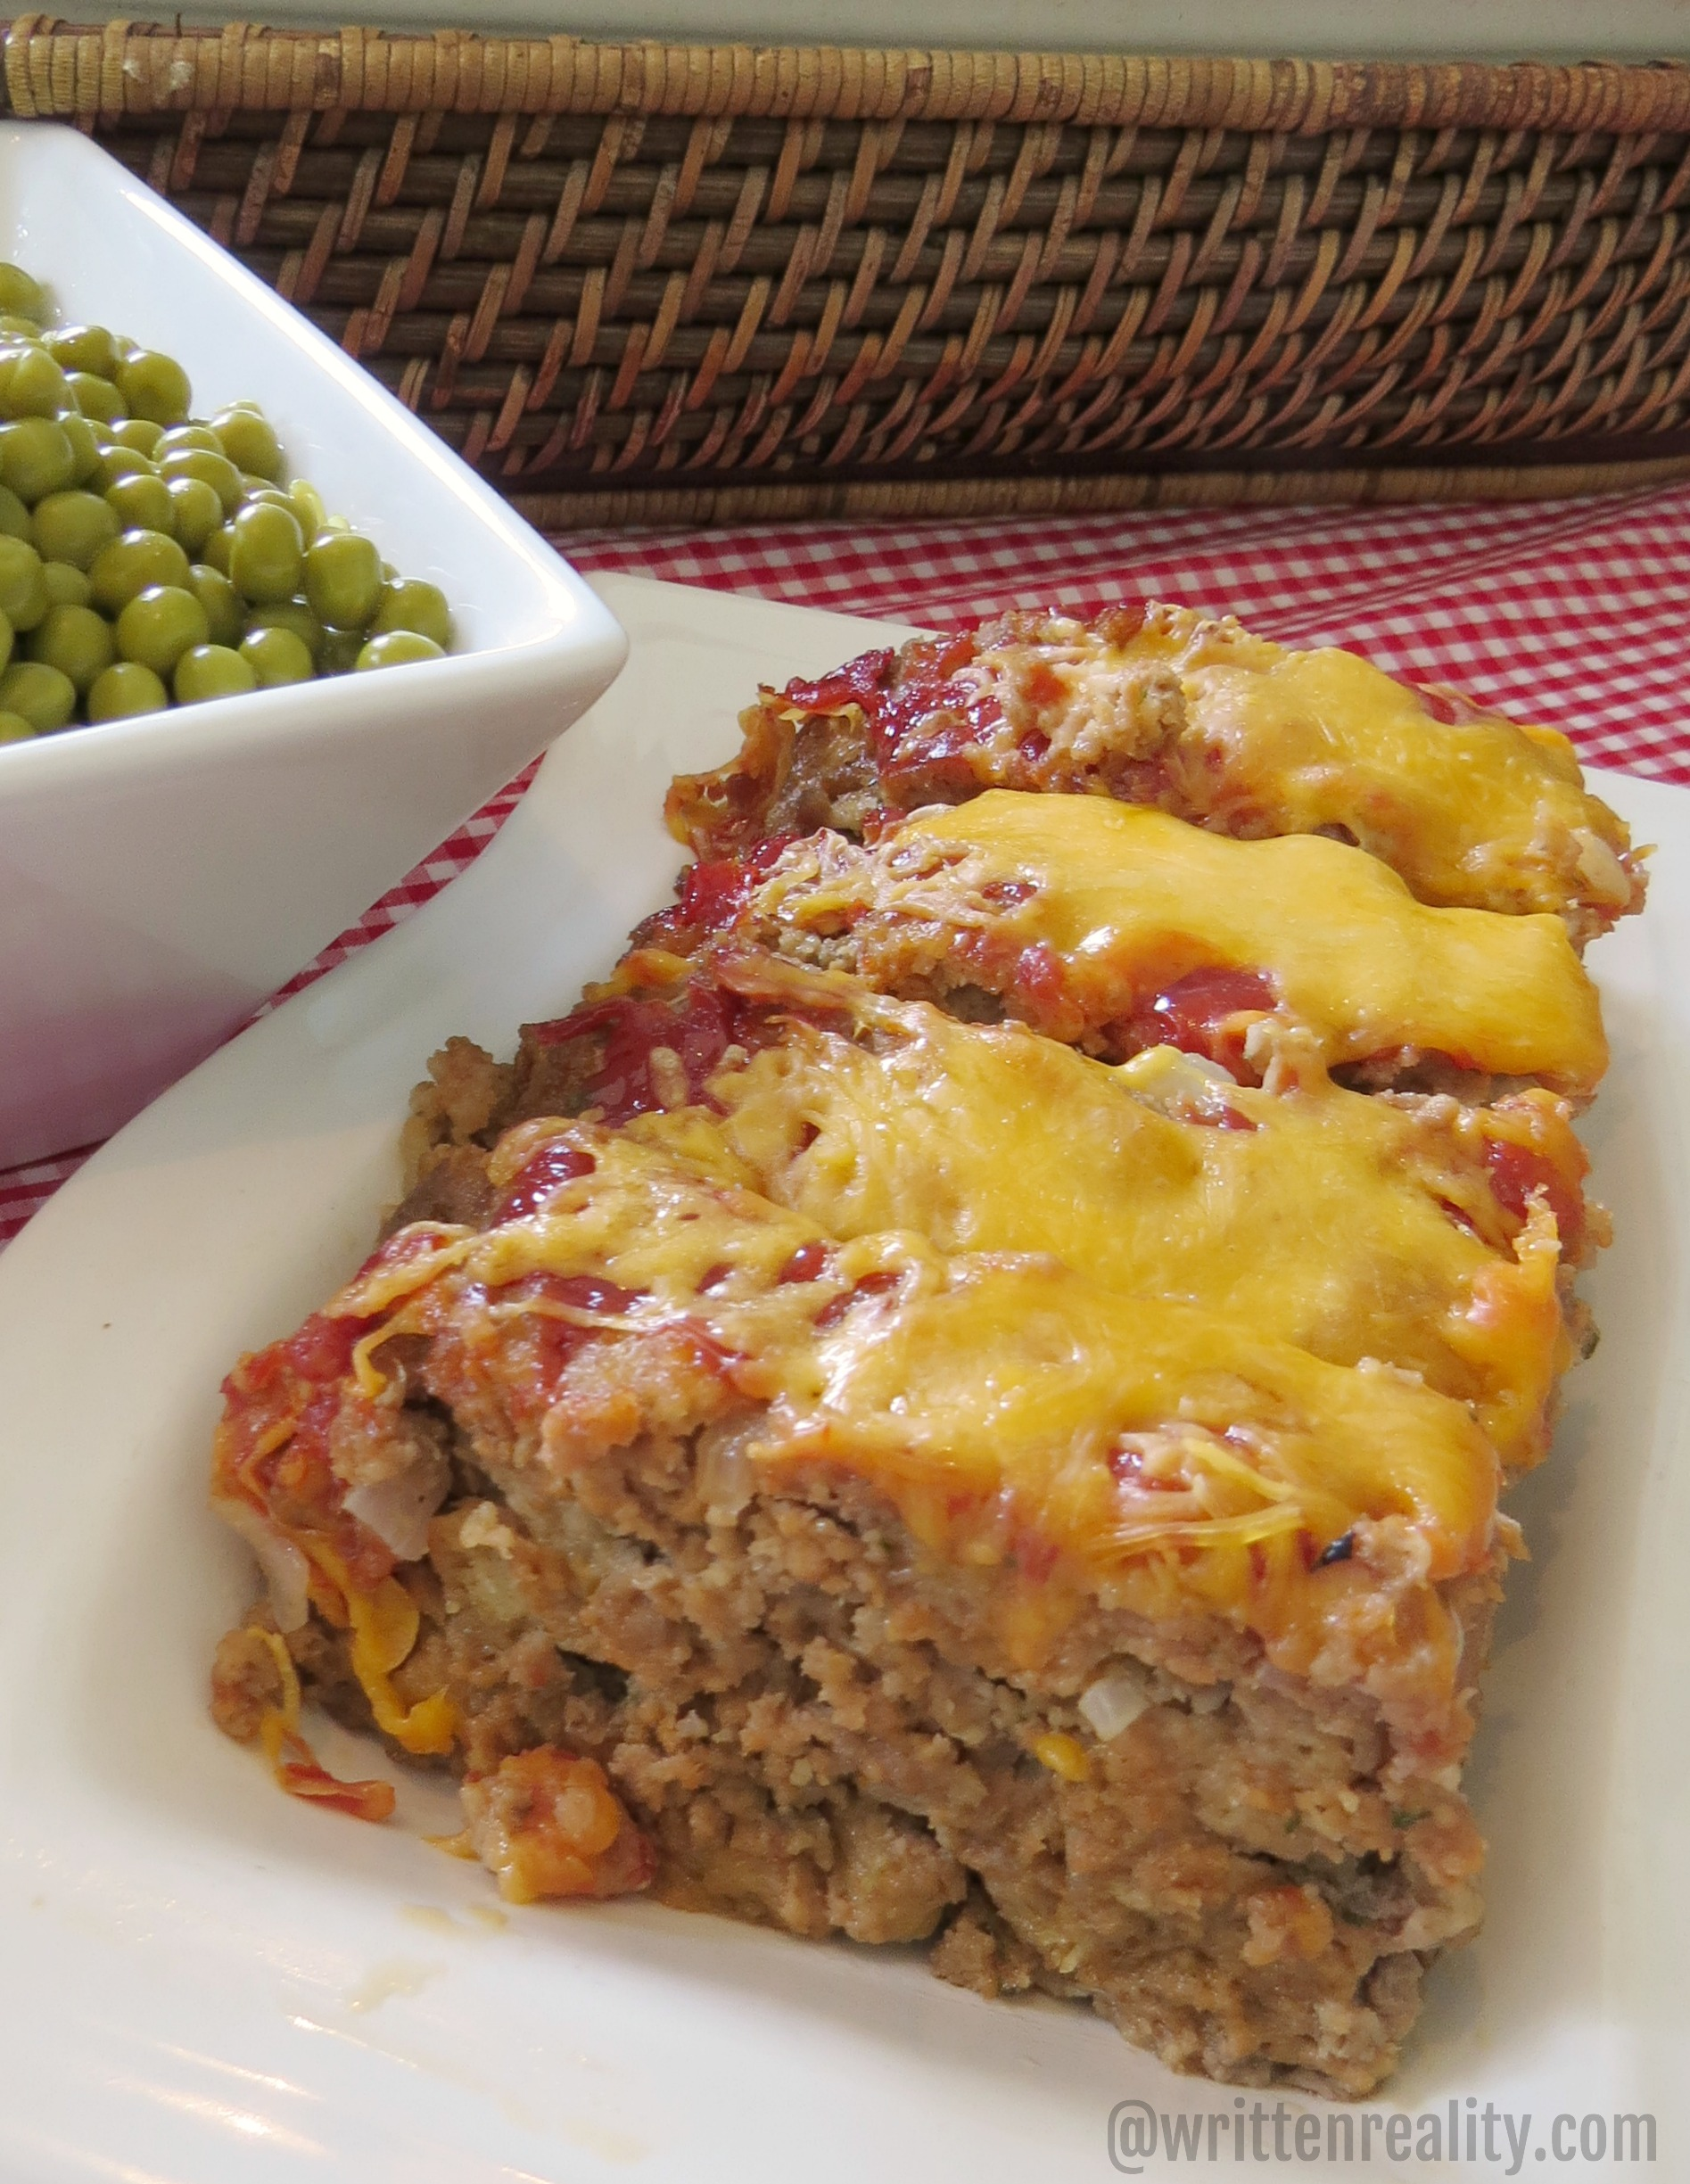 This Is The Best Easy Meatloaf Recipe And It S Delicious Written Reality